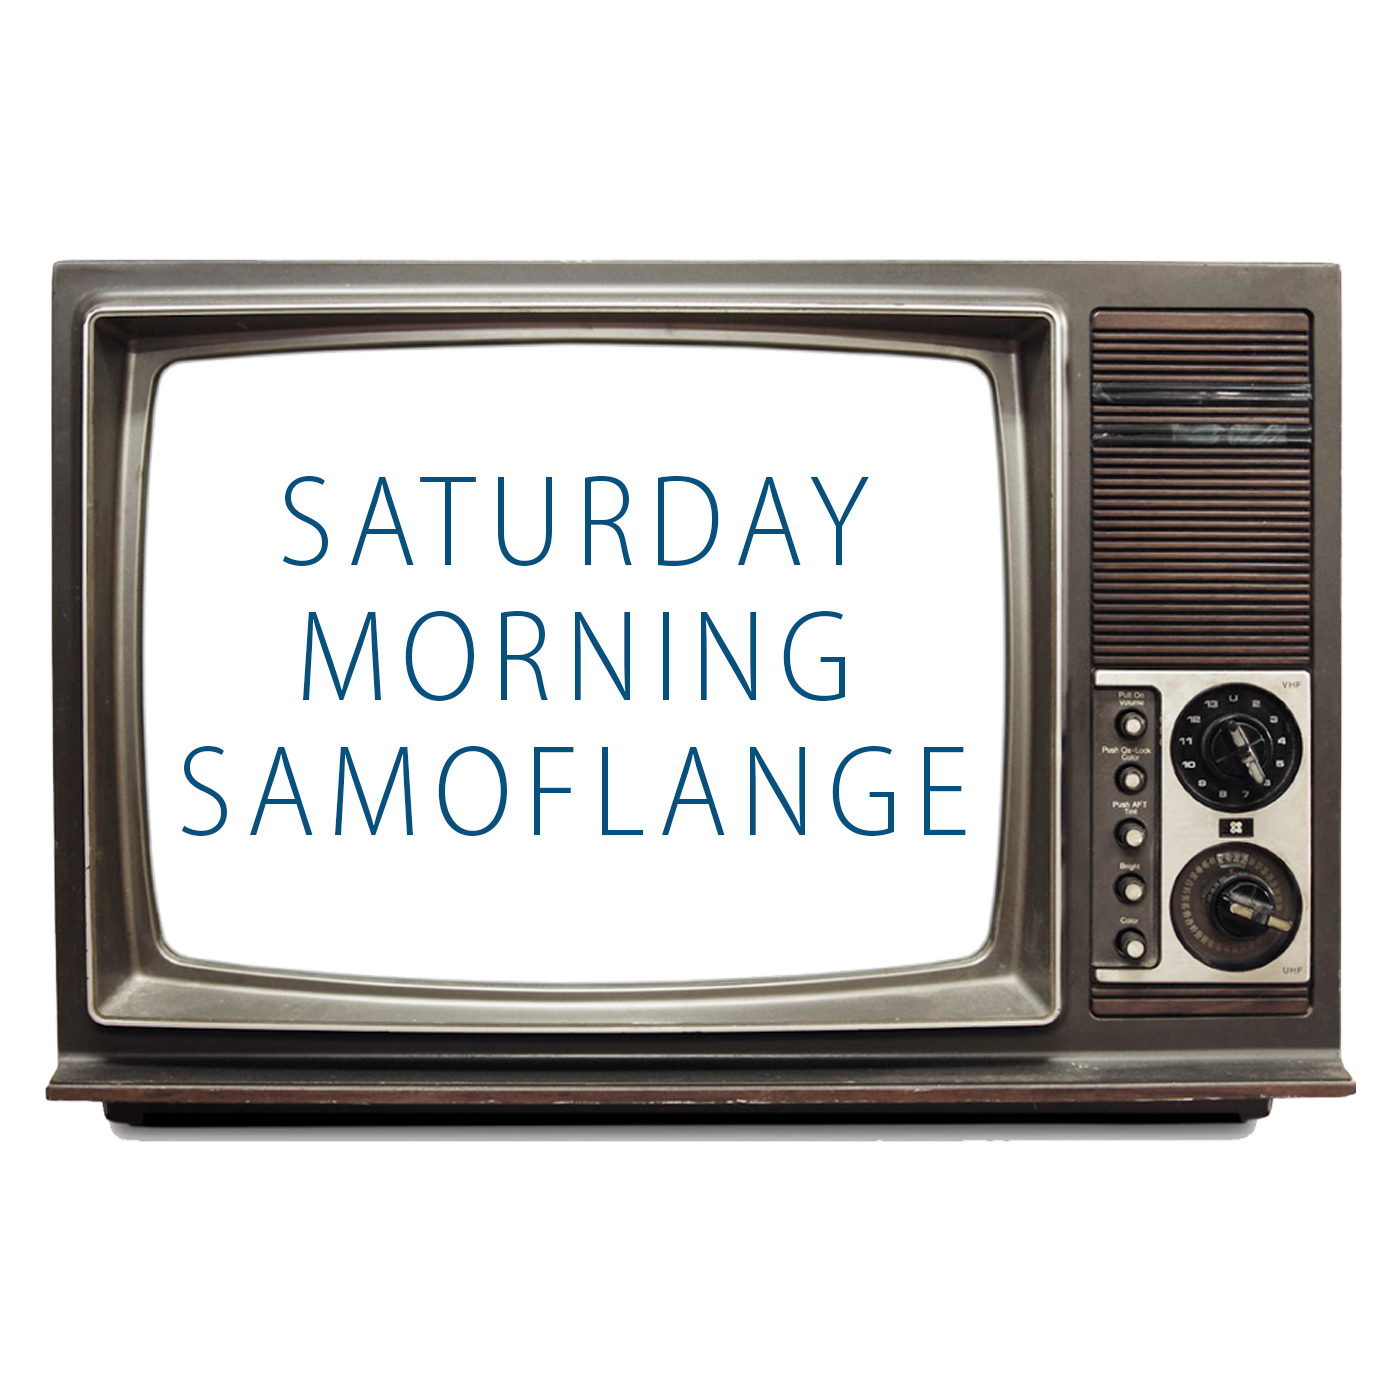 Saturday Morning Samoflange